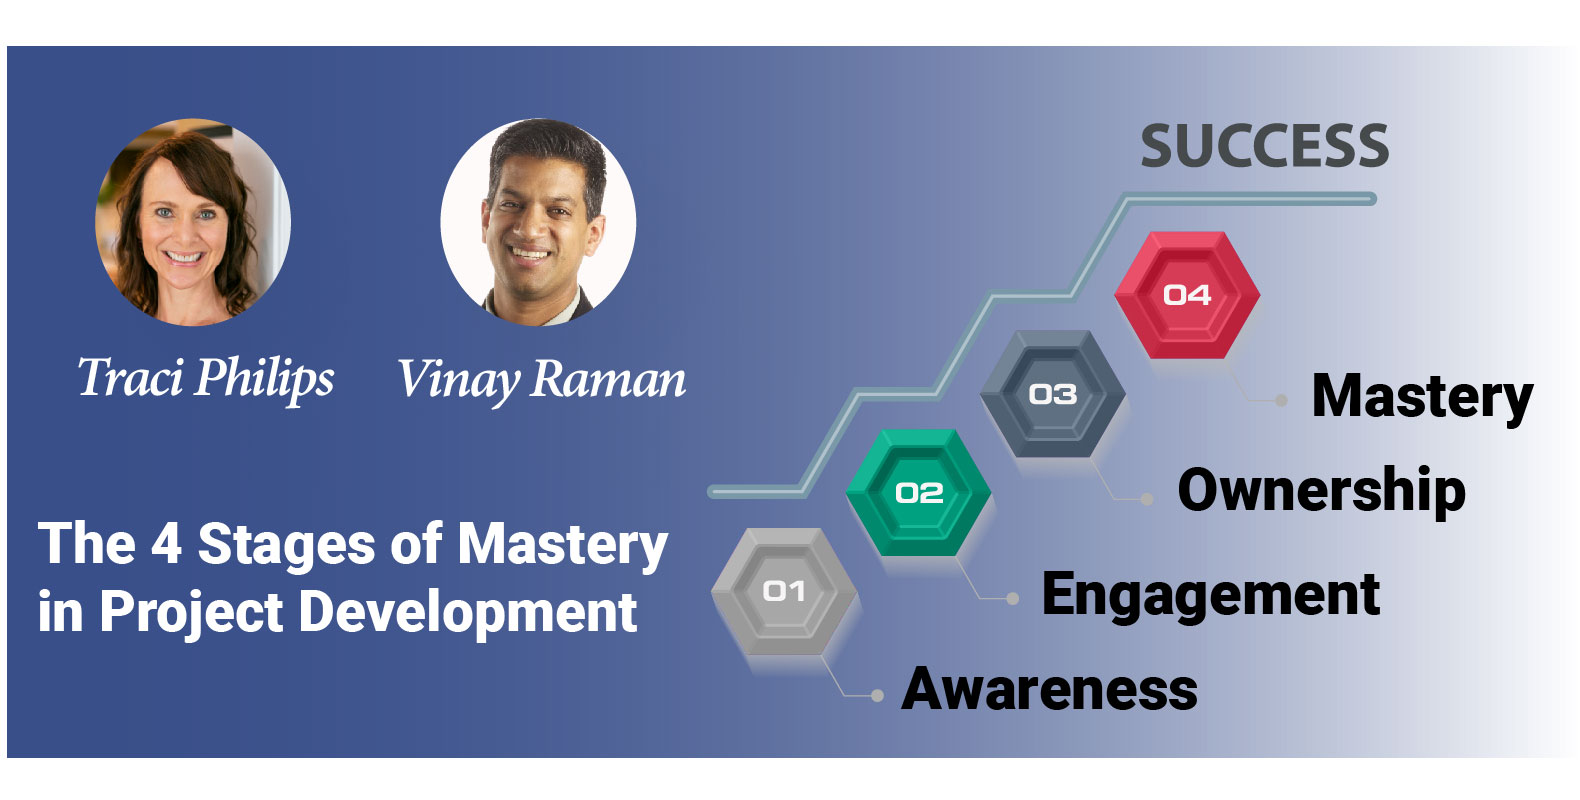 The 4 Stages of Mastery in Project Development